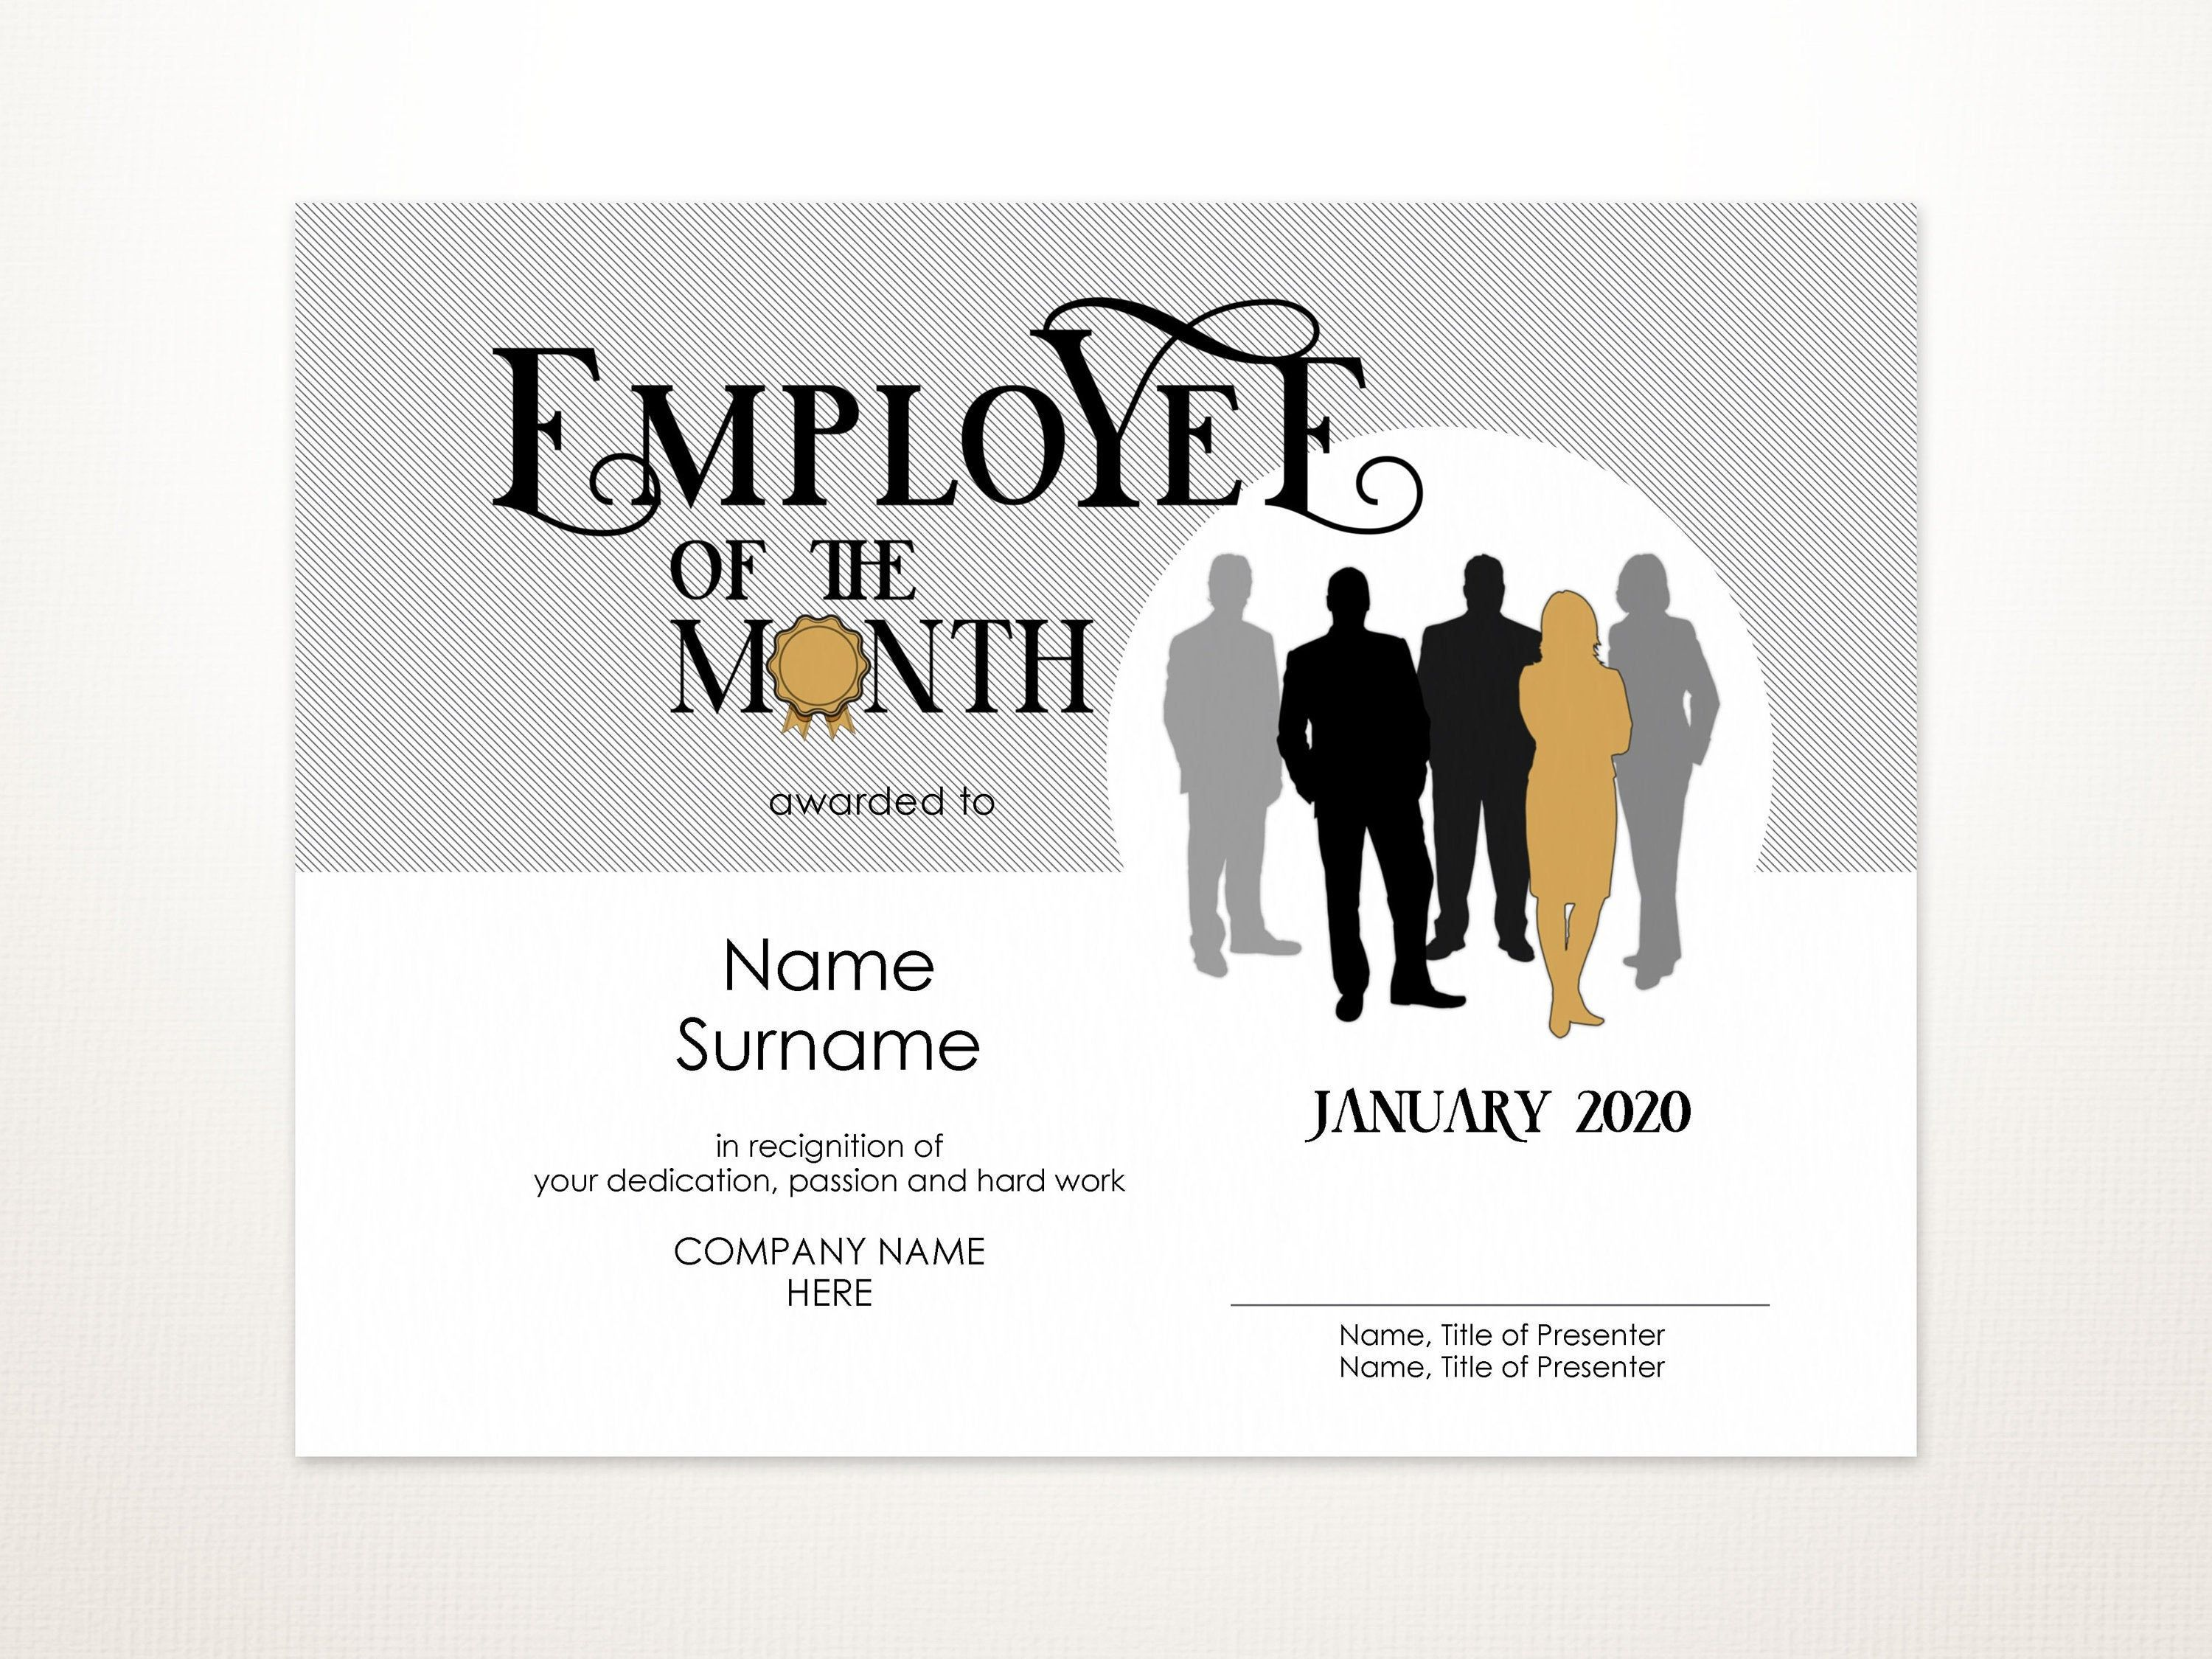 Woman Employee Of The Month Editable Template Printable Etsy Award Template Template Printable Certificate Templates Printable employee of the month certificate